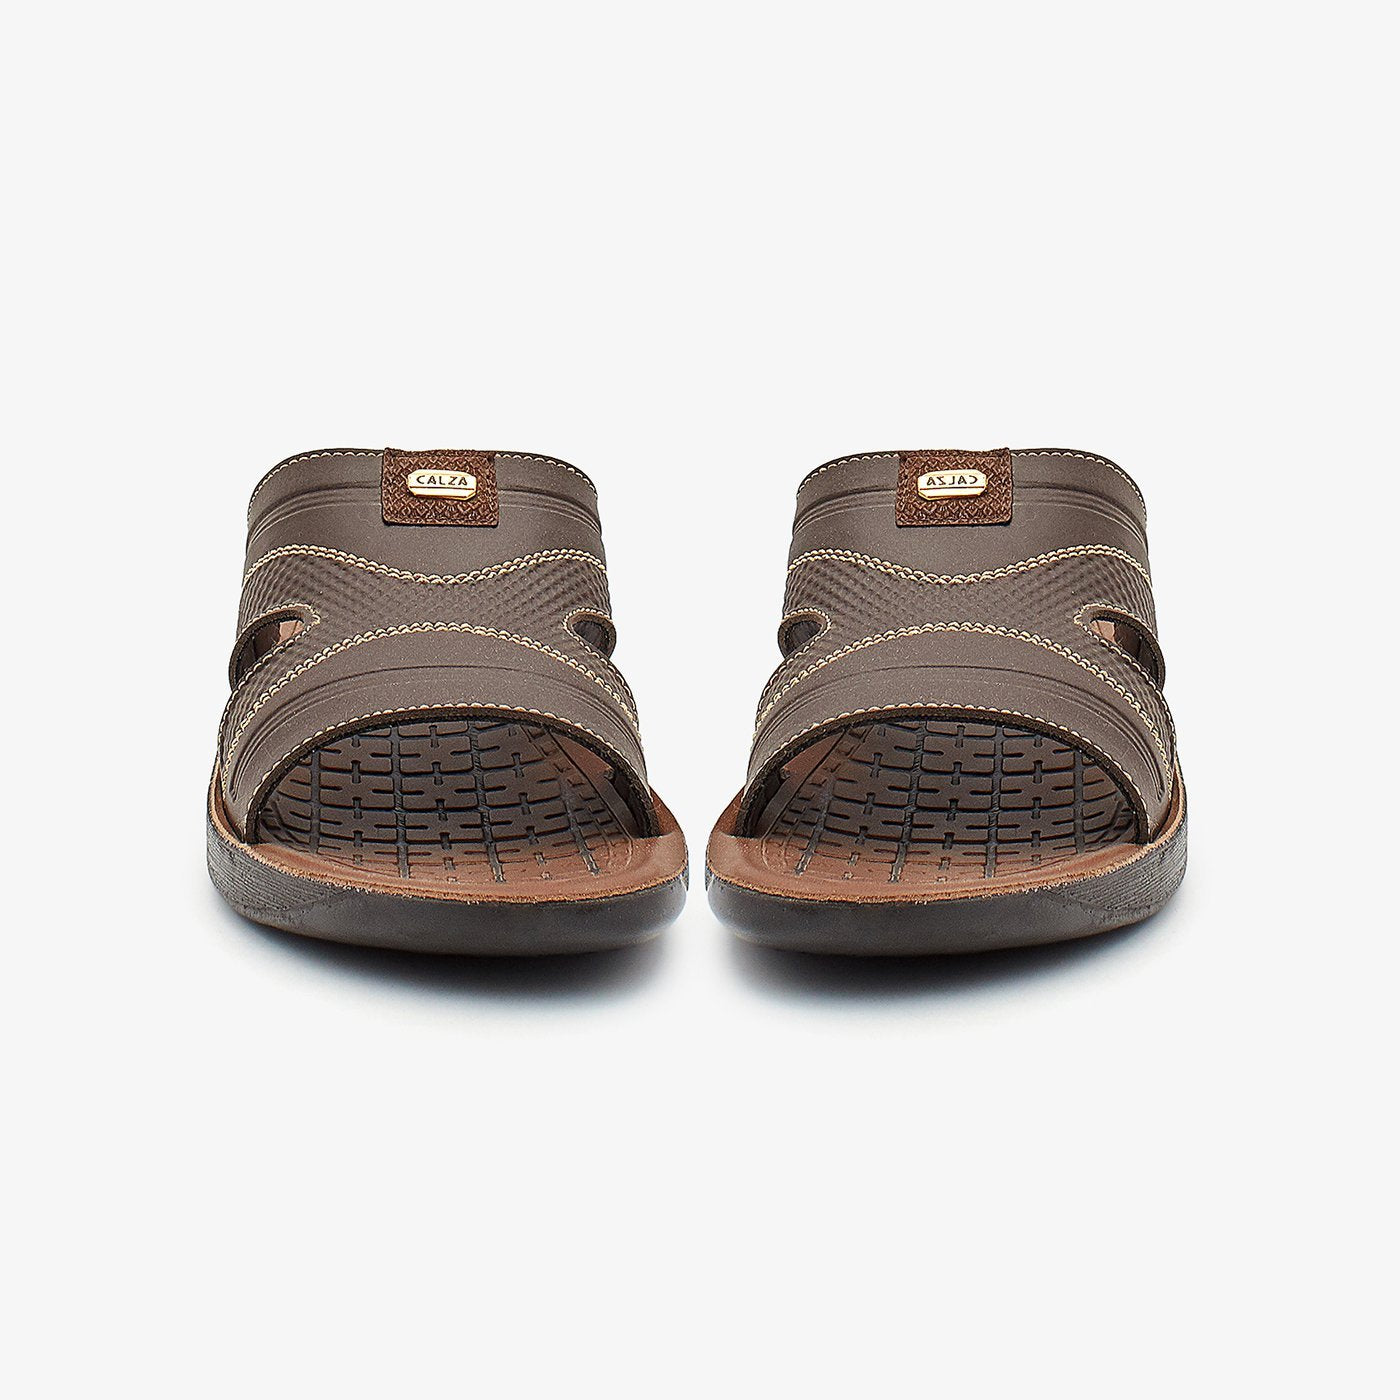 Comfortable Chappals for Men